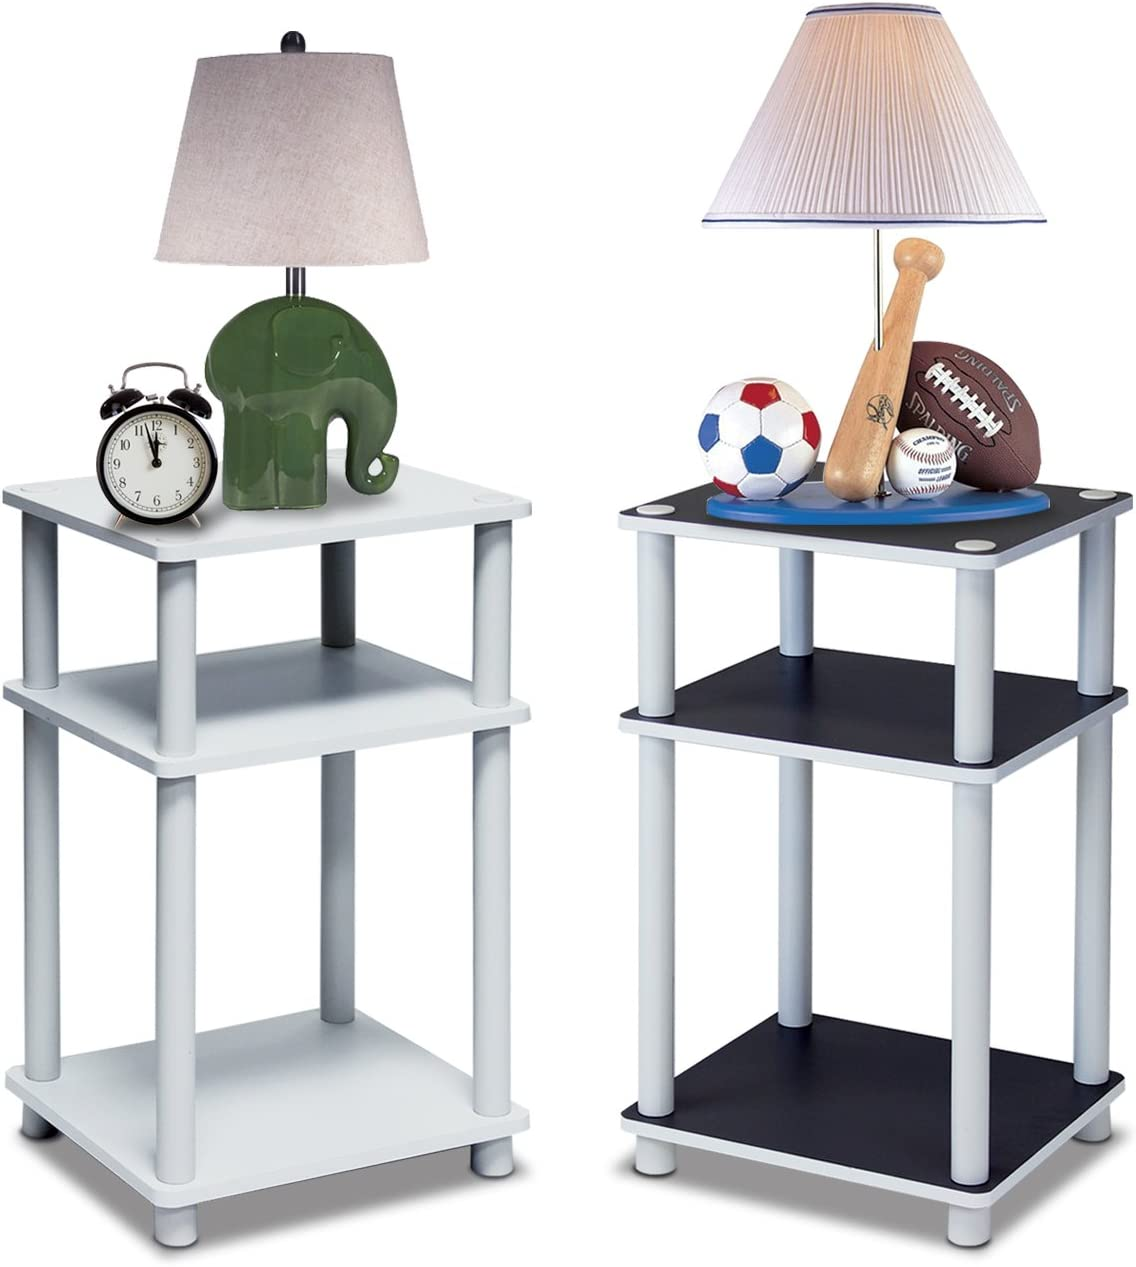 3-Tier End Table